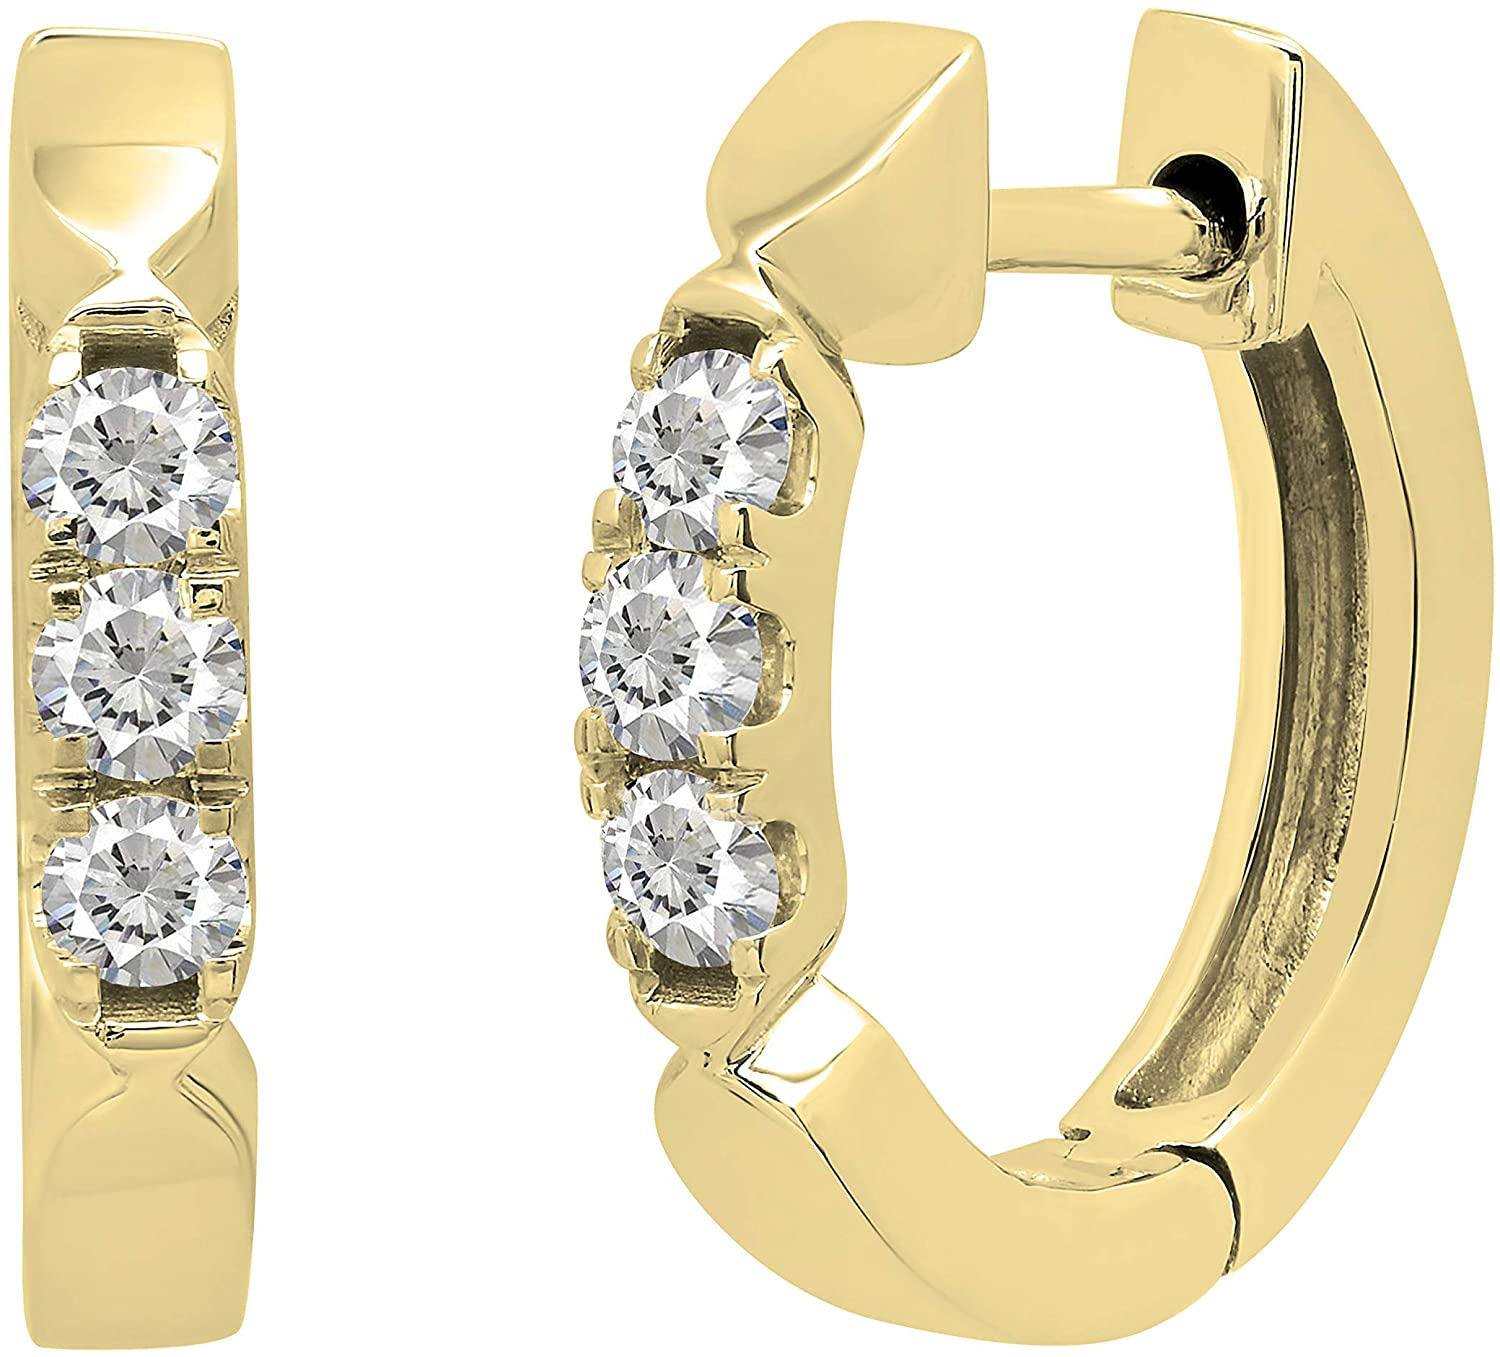 Dazzlingrock Collection 0.20 Carat (ctw) Round Lab Grown White Diamond Ladies 3 Stone Huggies Hoop Earrings 1/5 CT, Available in 10K/14K/18K Gold & 925 Sterling Silver